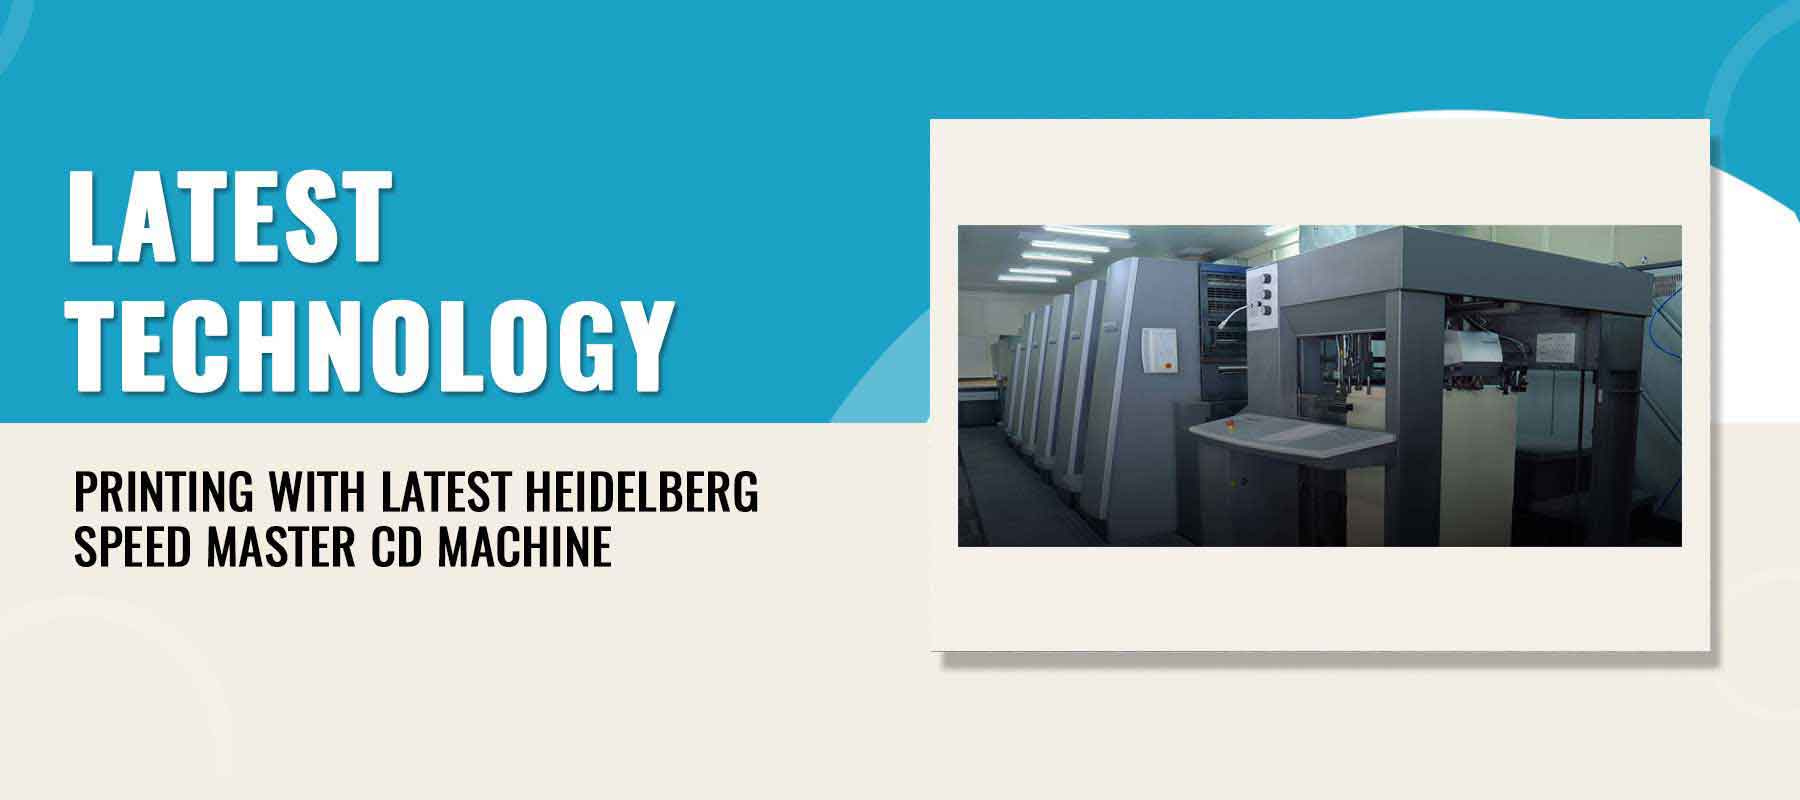 Printing With Latest Heidelberg Speed Master CD Machine